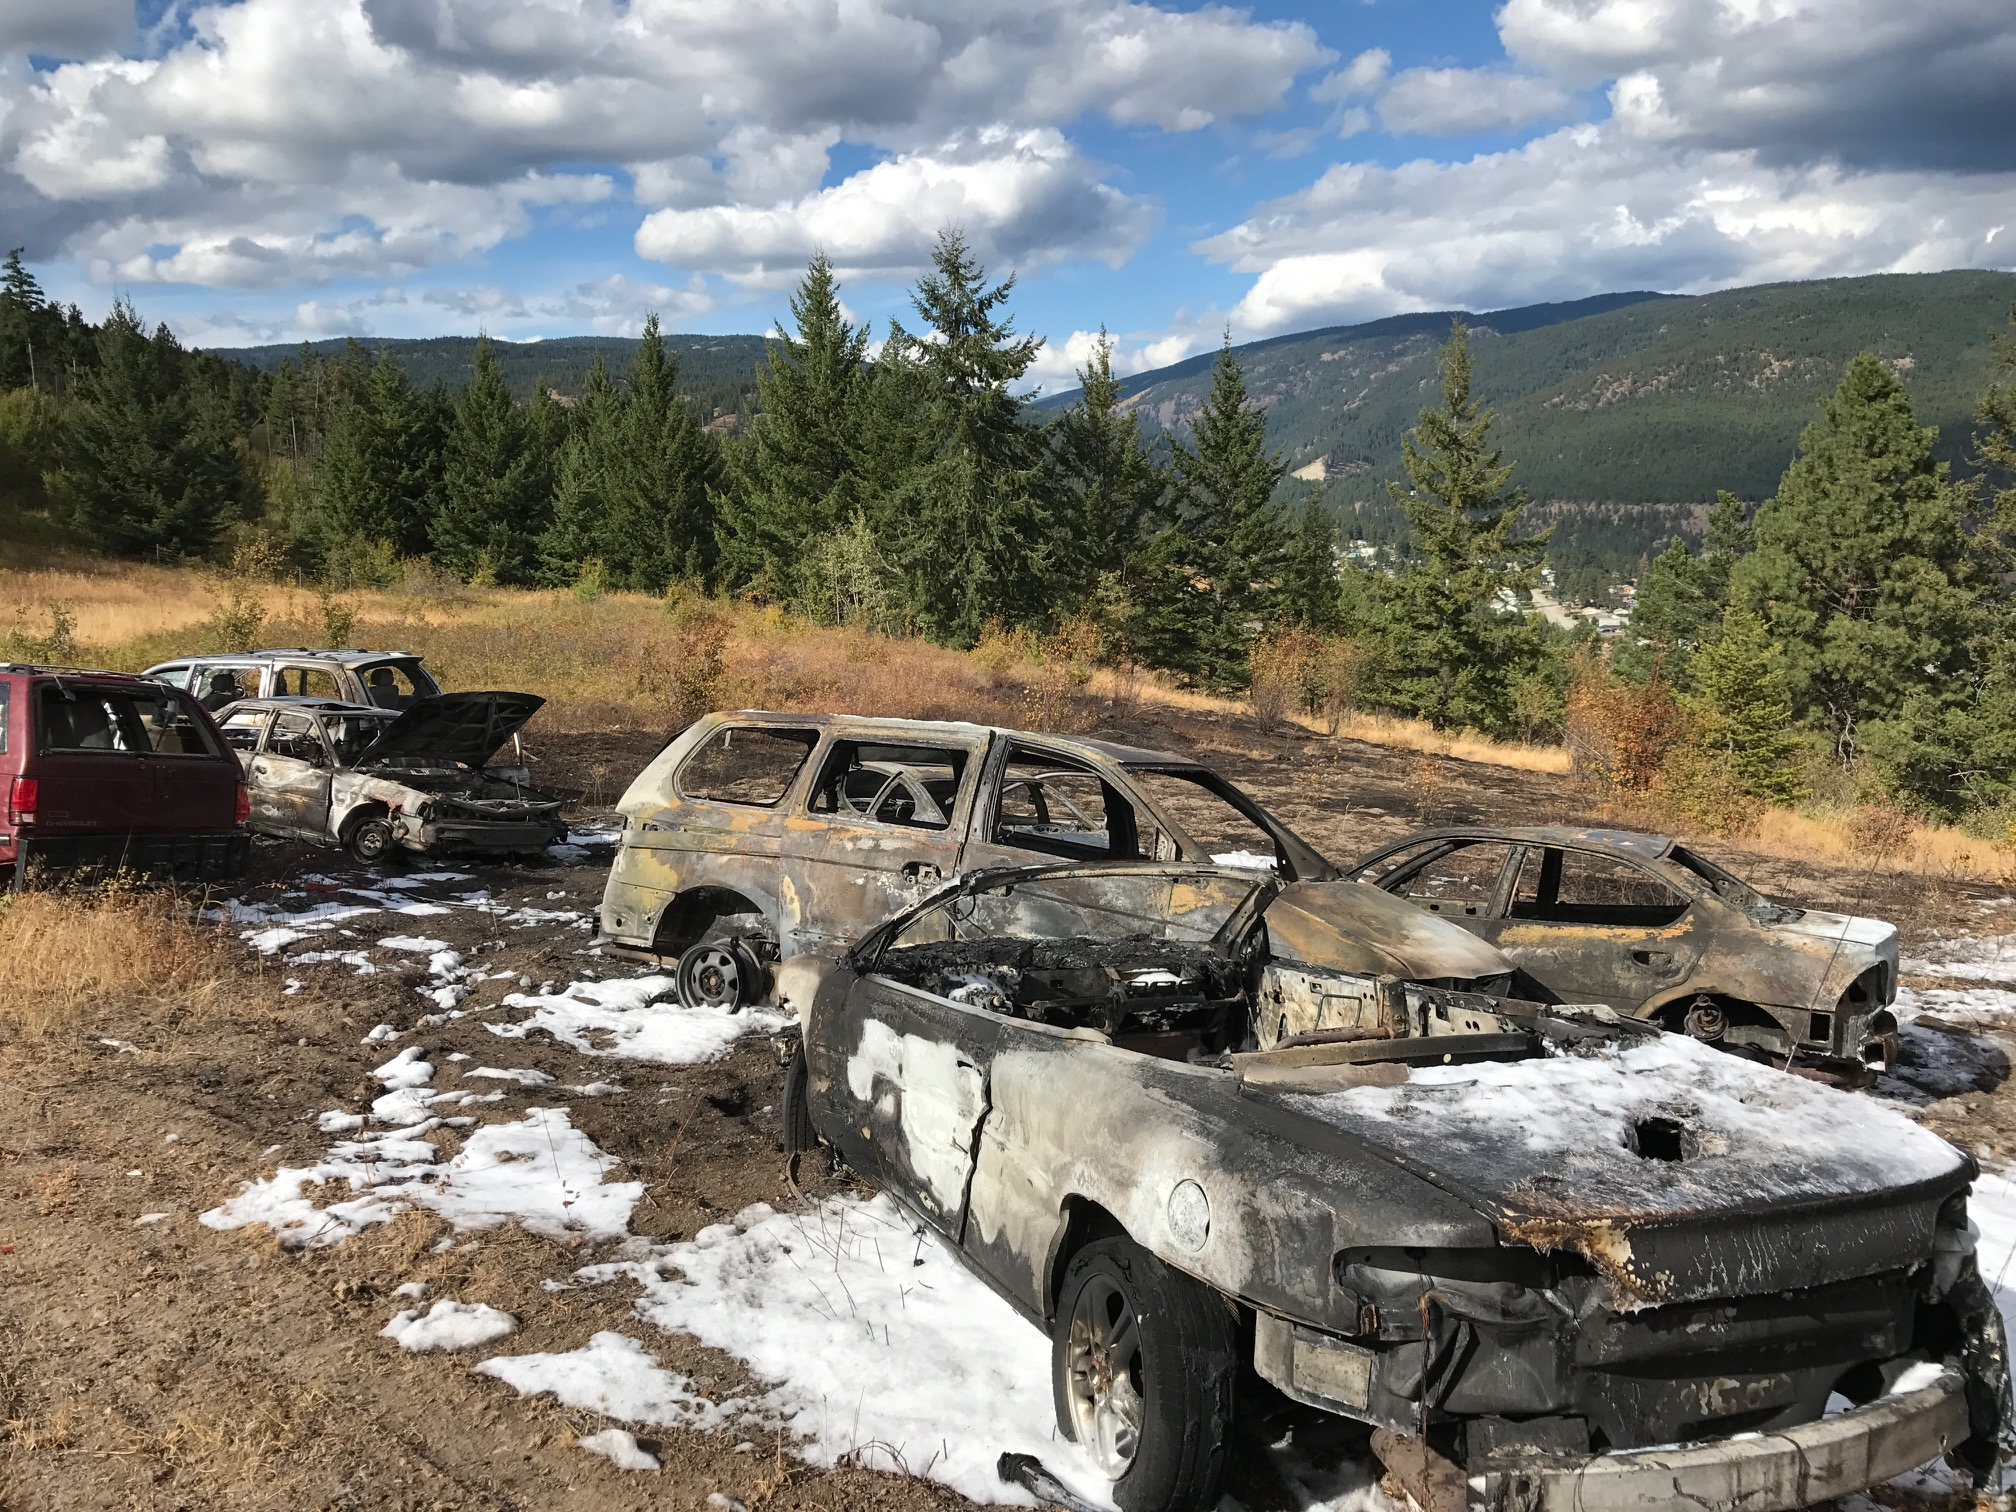 Cars and Grass Set On Fire in Glenrosa, NDP to Ban Union/Corporate Donations and Name the New Middle School